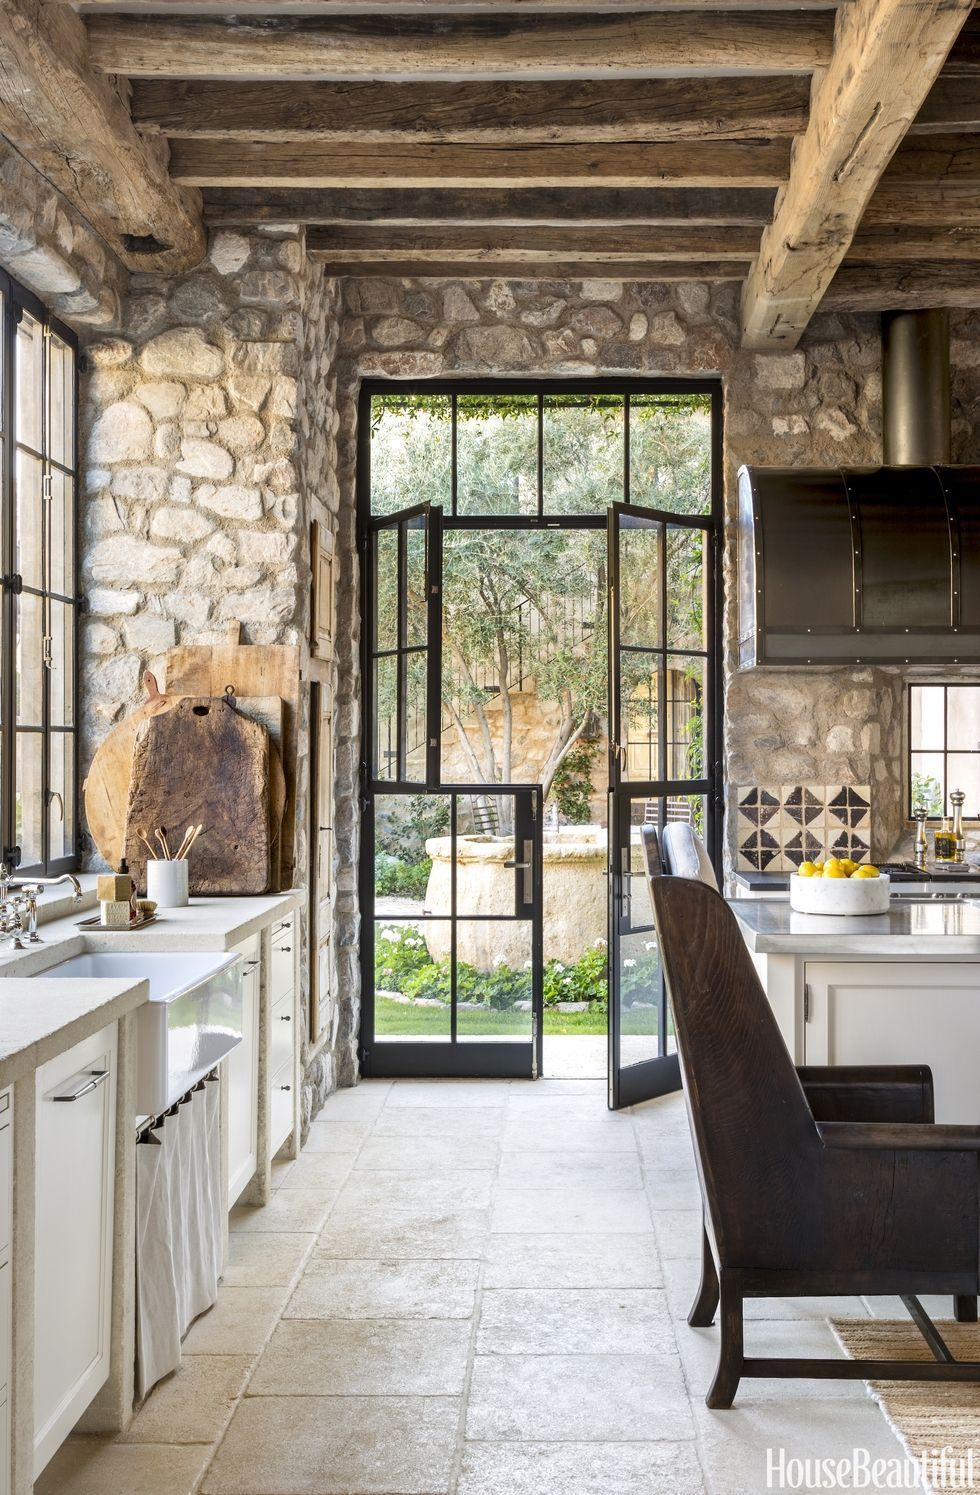 This Rustic Arizona Kitchen Feels Like a French Countryside